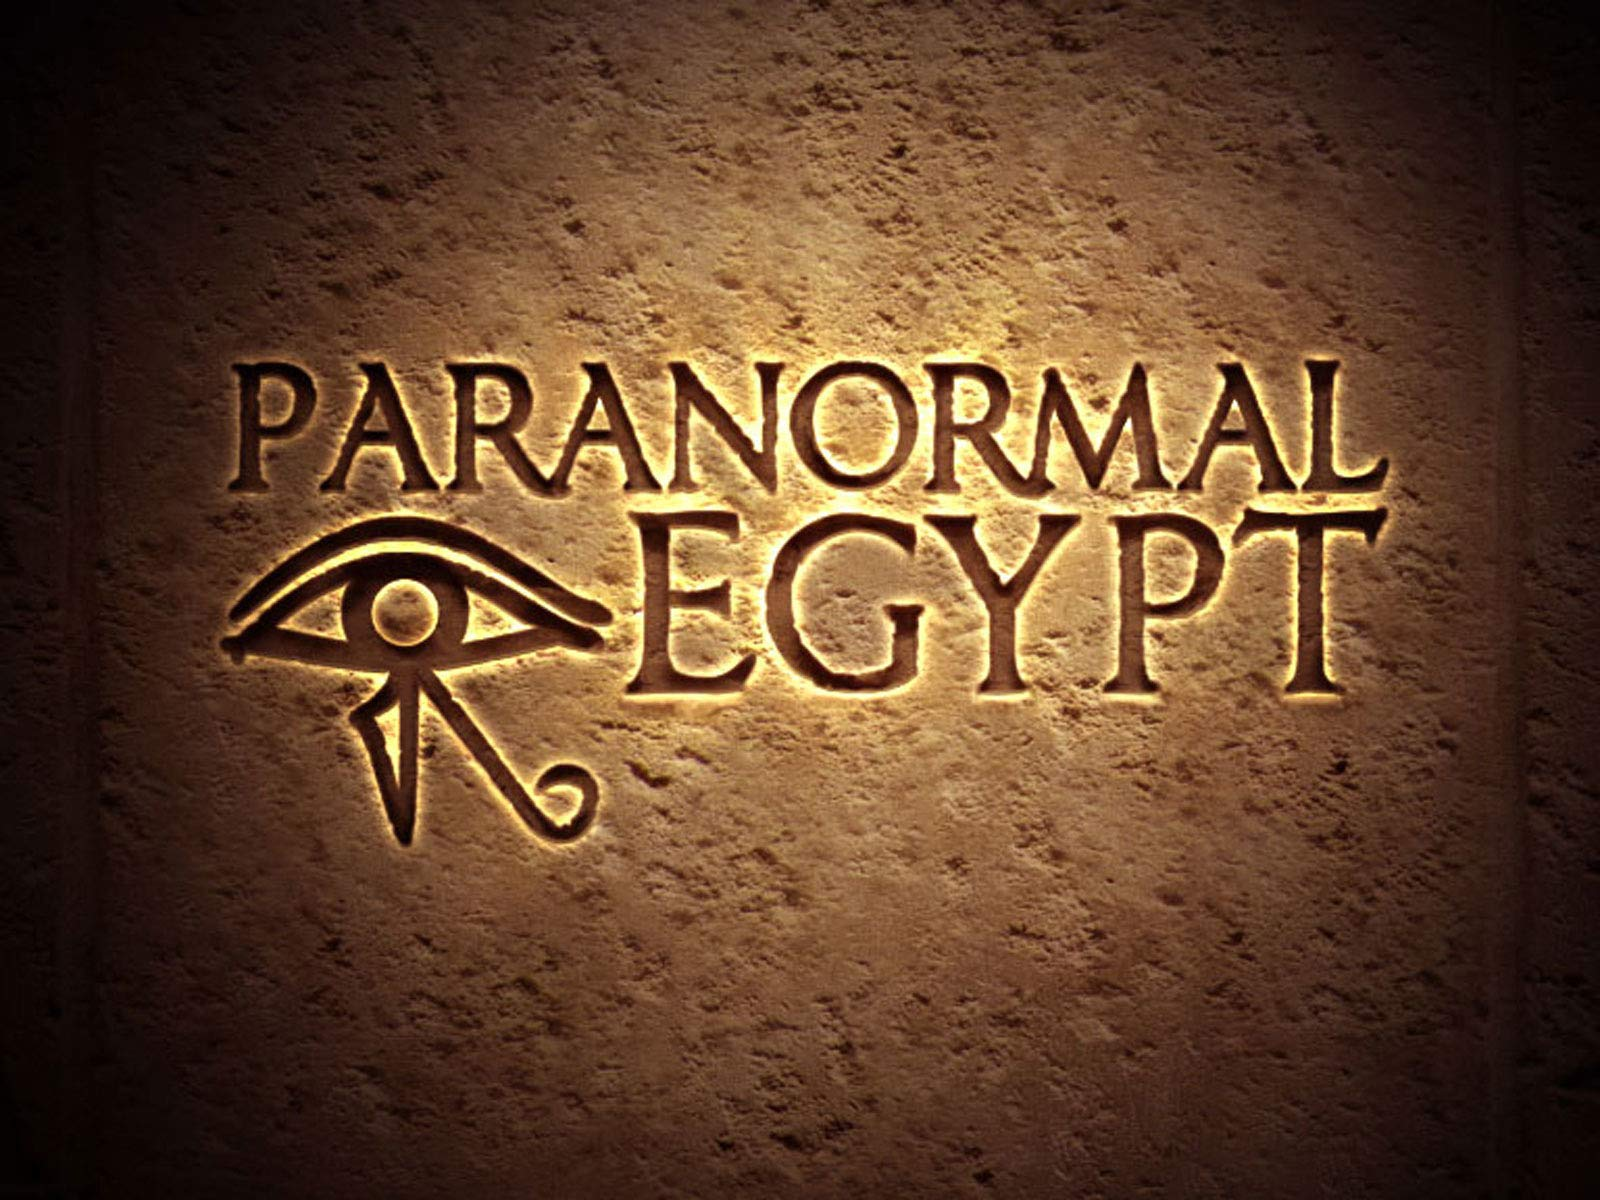 Paranormal Egypt - Season 1